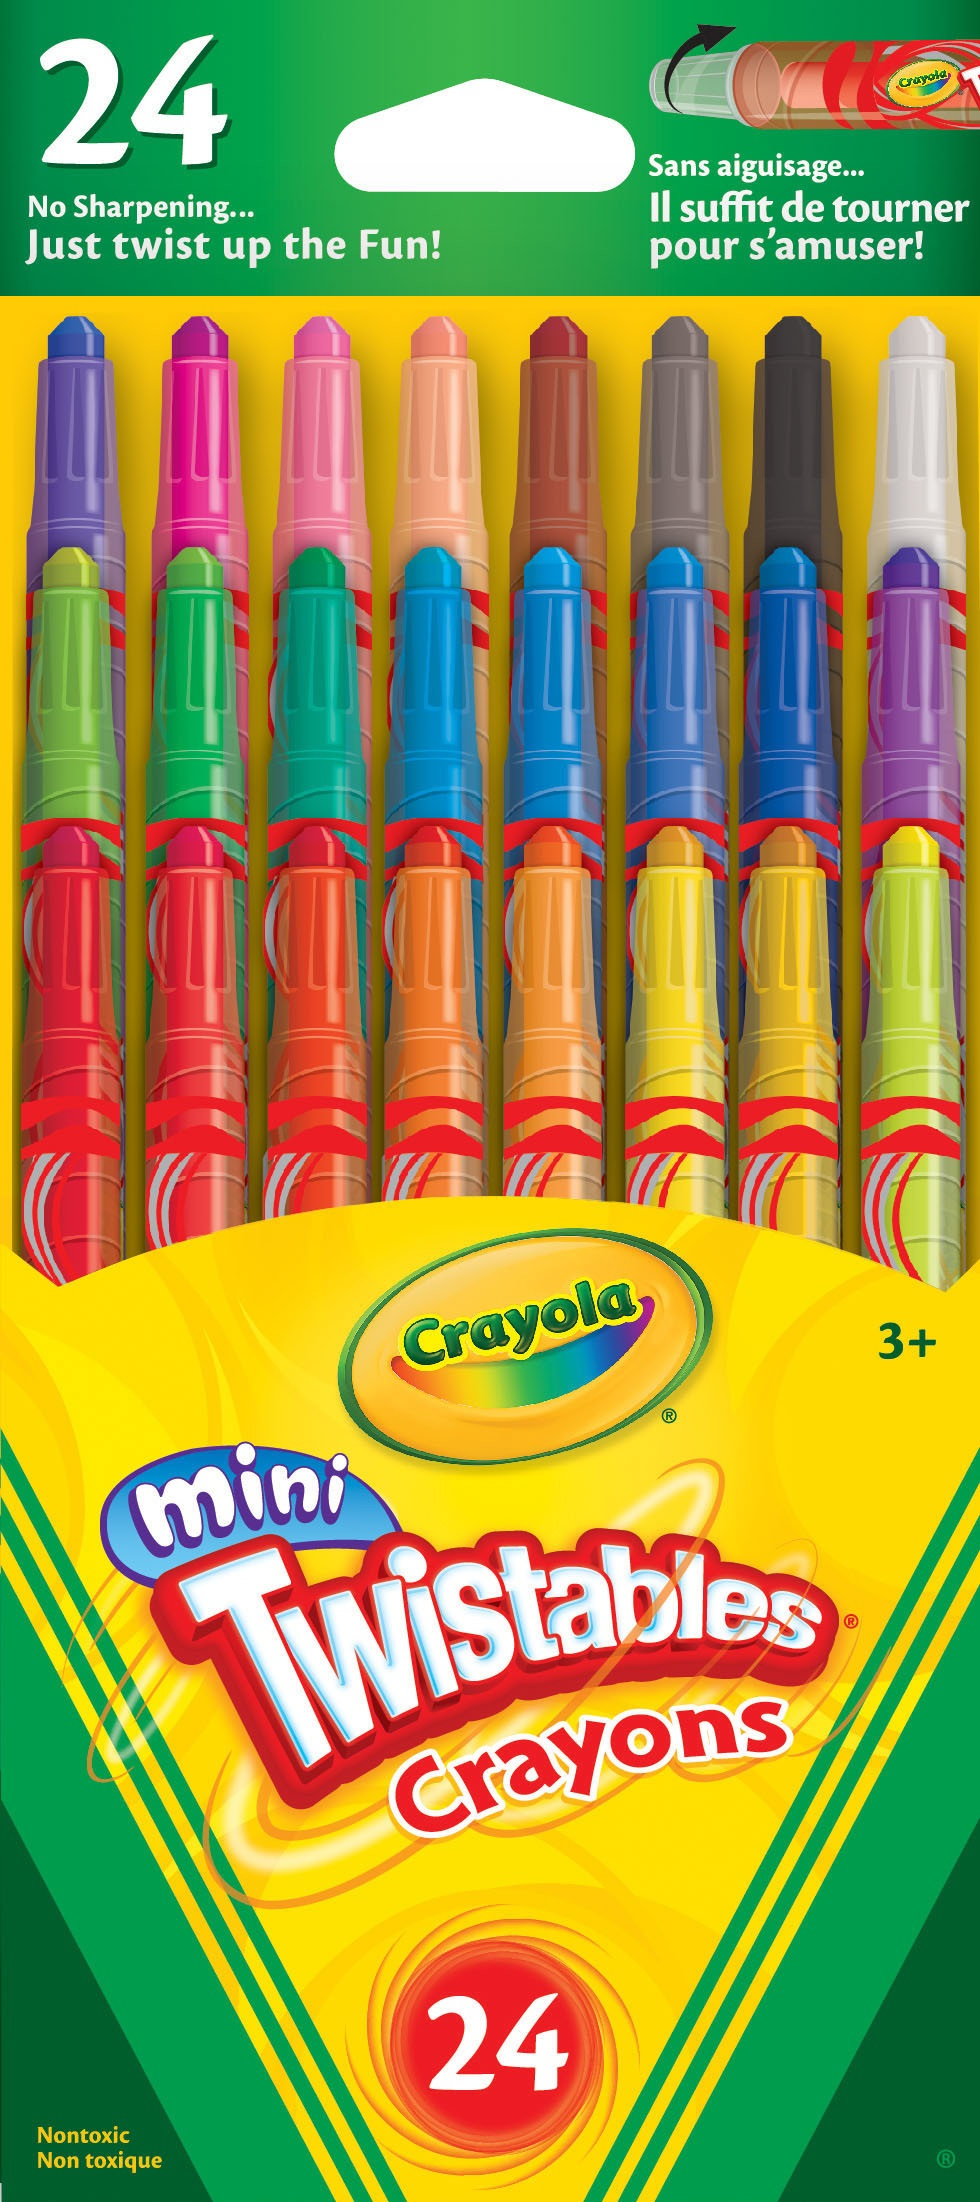 Crayola 529724 Mini Twistable Crayons - 24/pack